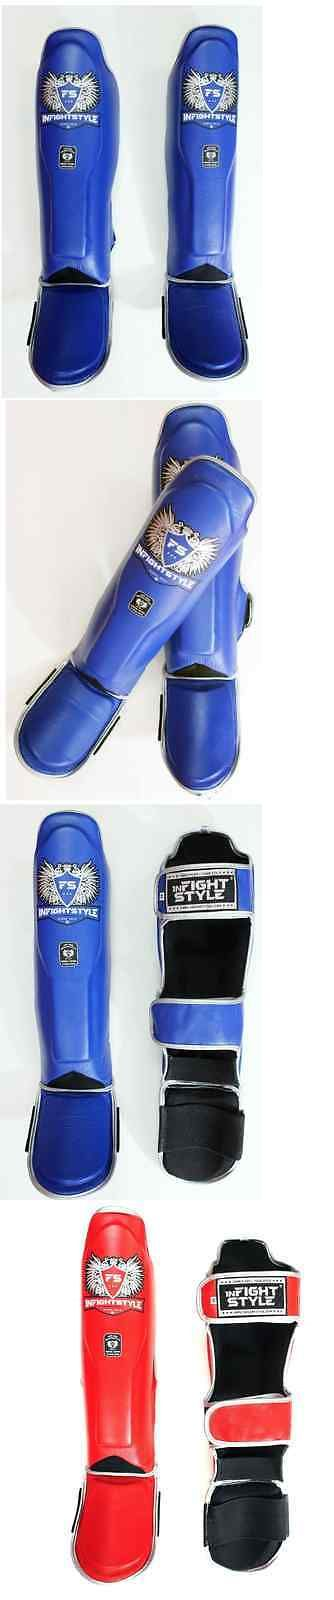 Shin Guards 179782: New Infightstyle Muay Thai Shin Guards Shin Kicking Pads Blue And Red Usa Stock -> BUY IT NOW ONLY: $95 on eBay!